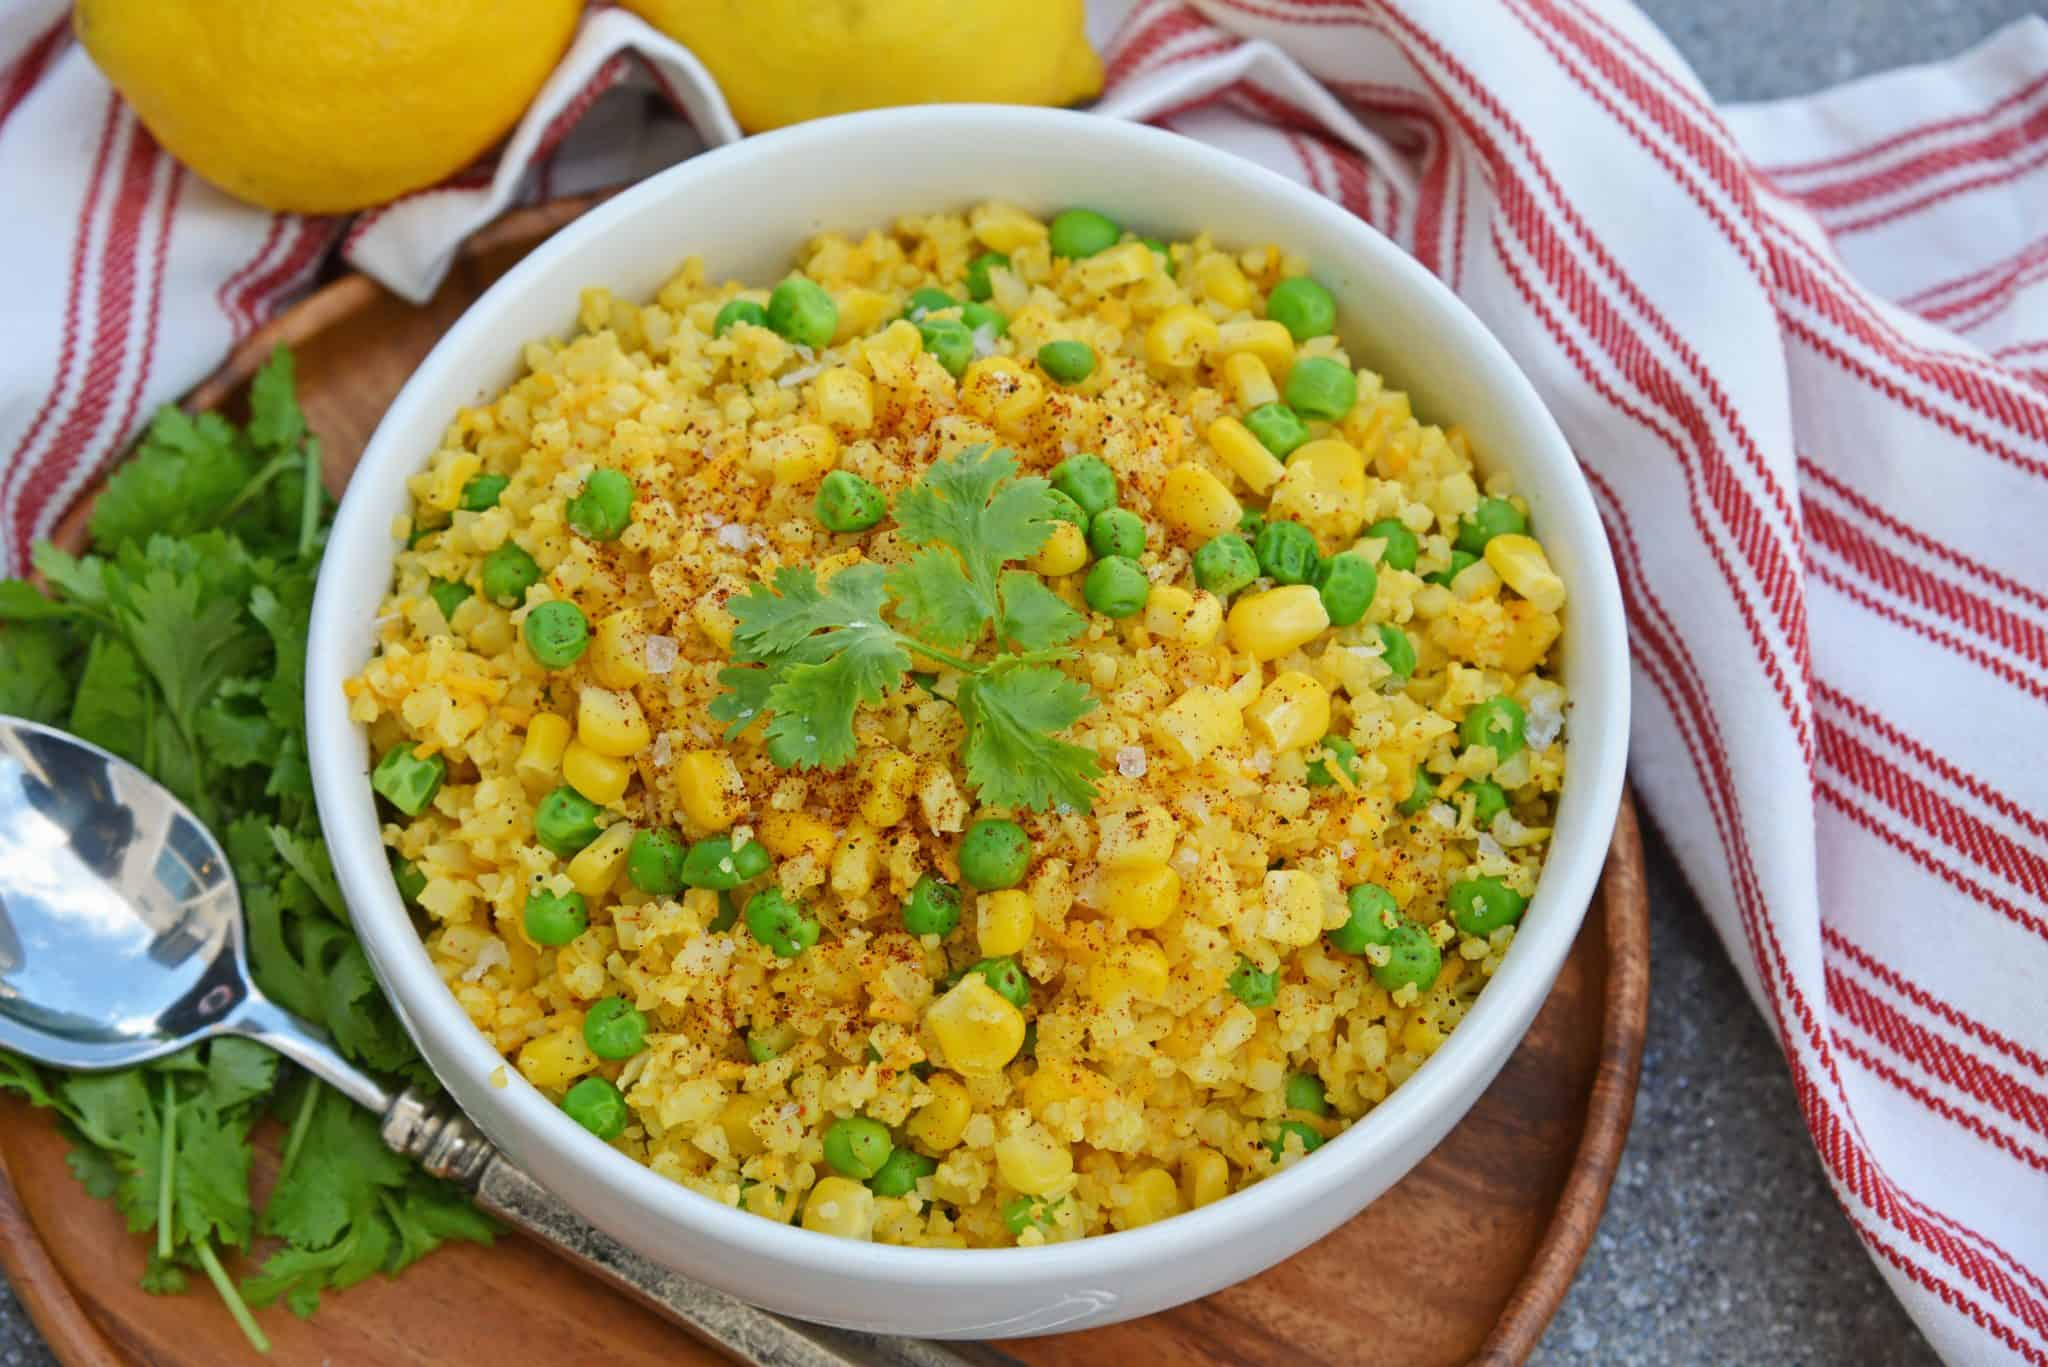 This Mexican Cauliflower Rice recipe is a deliciously easy and cheesy cauliflower rice made with simple ingredients and lots of flavor. #cheesycauliflowerrice #cauliflowerricerecipe #mexicancauliflowerrice www.savoryexperiments.com